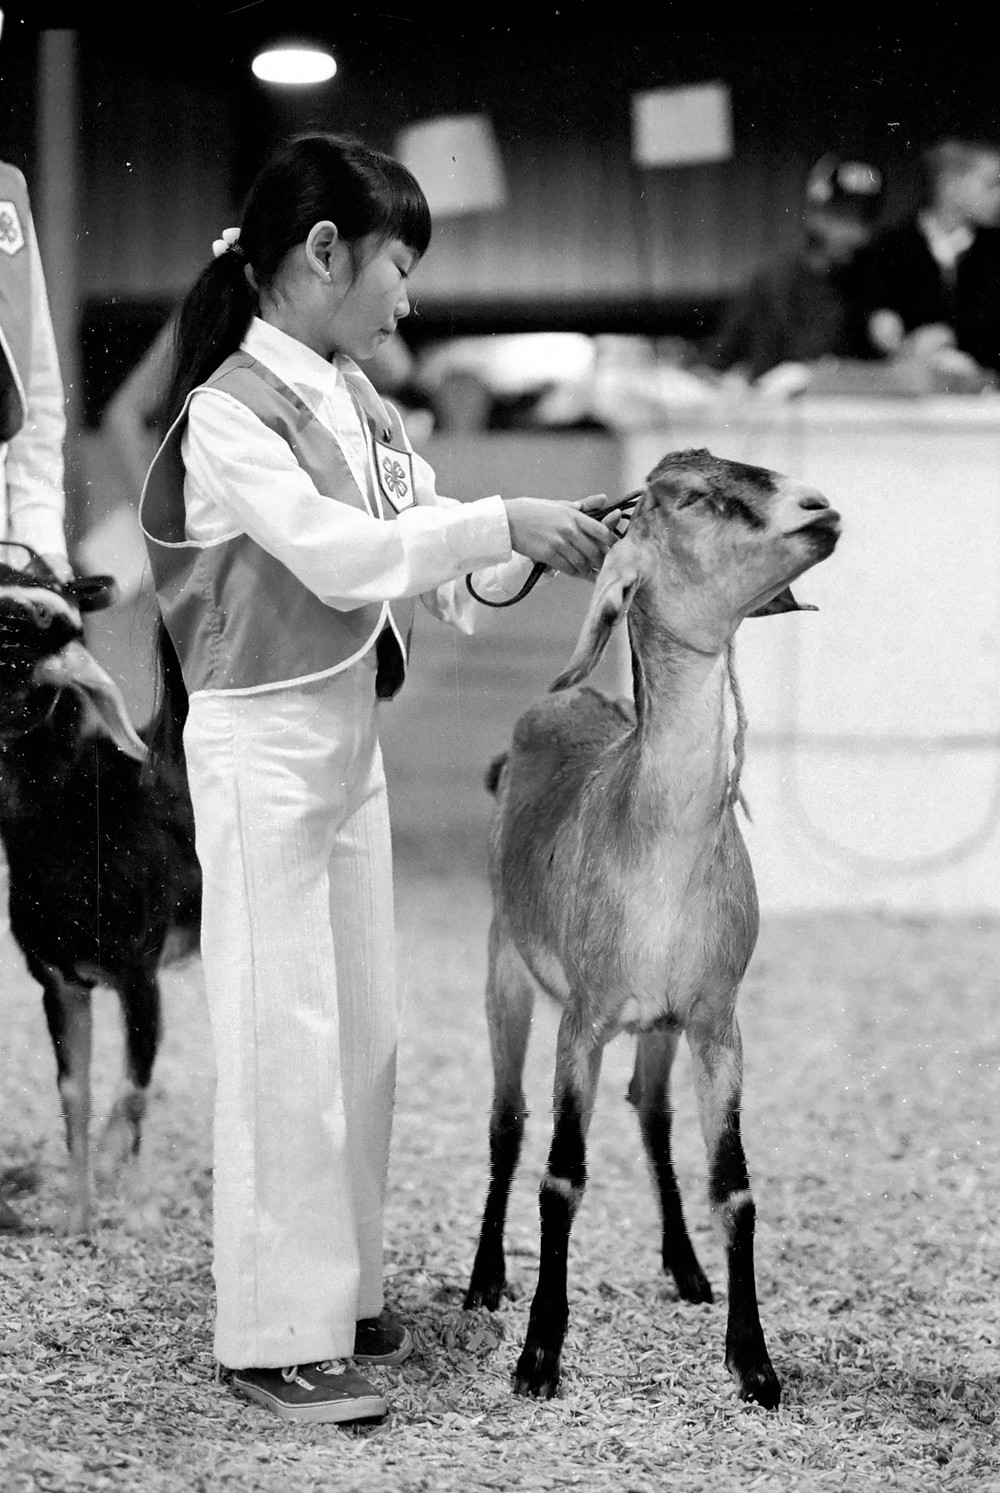 child in 4-h uniform showing a goat